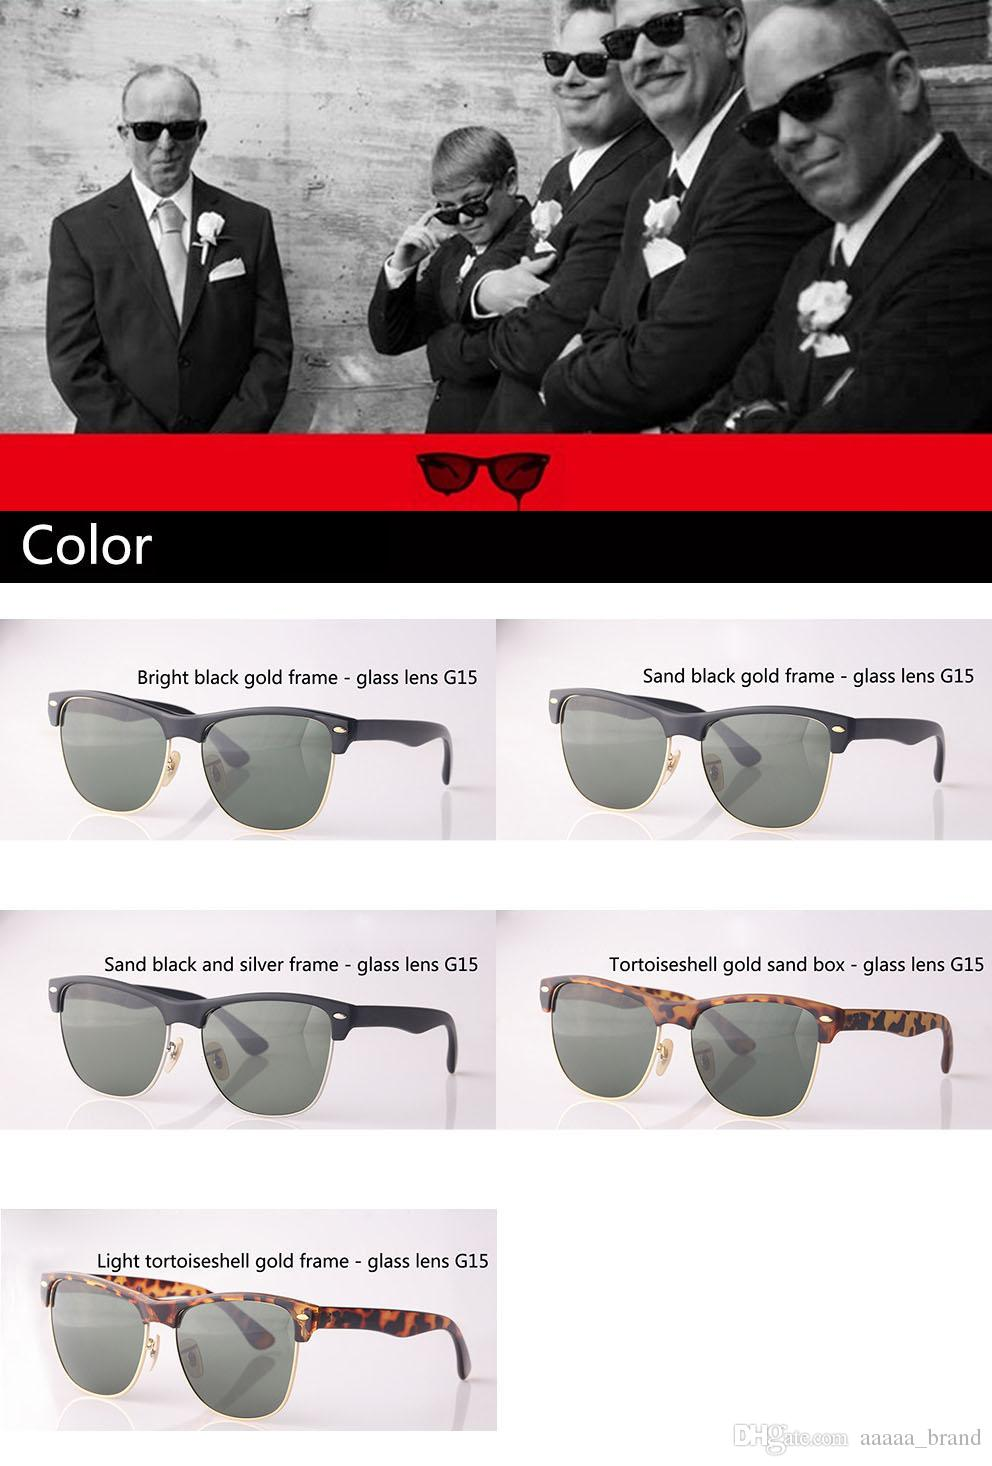 5A+ High Quality Brand Sunglasses men women brand designer Semi-Rimless frame UV400 Mirror glass lens Eyewear with box and all accessories